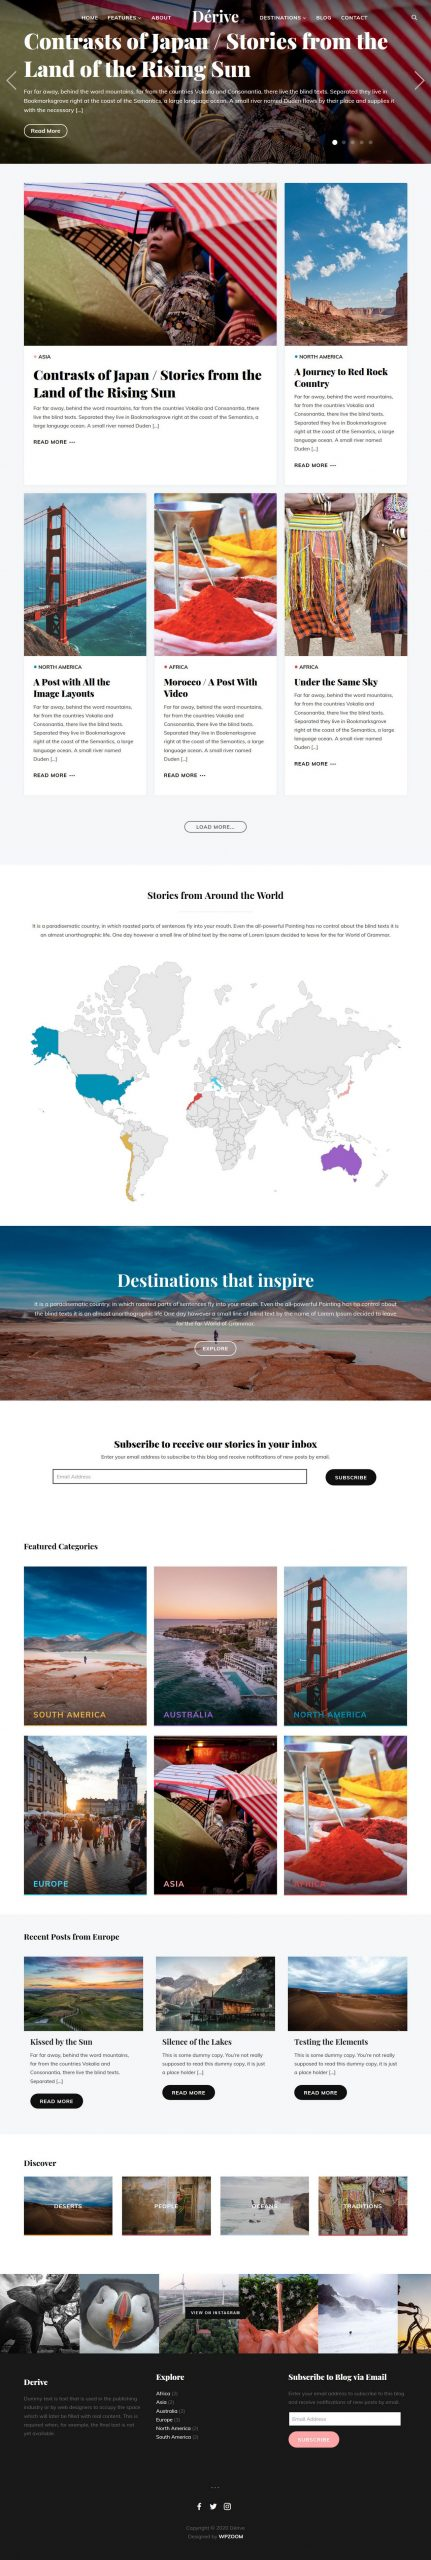 dérive–wordpress theme 01 scaled - Dérive WordPress Theme